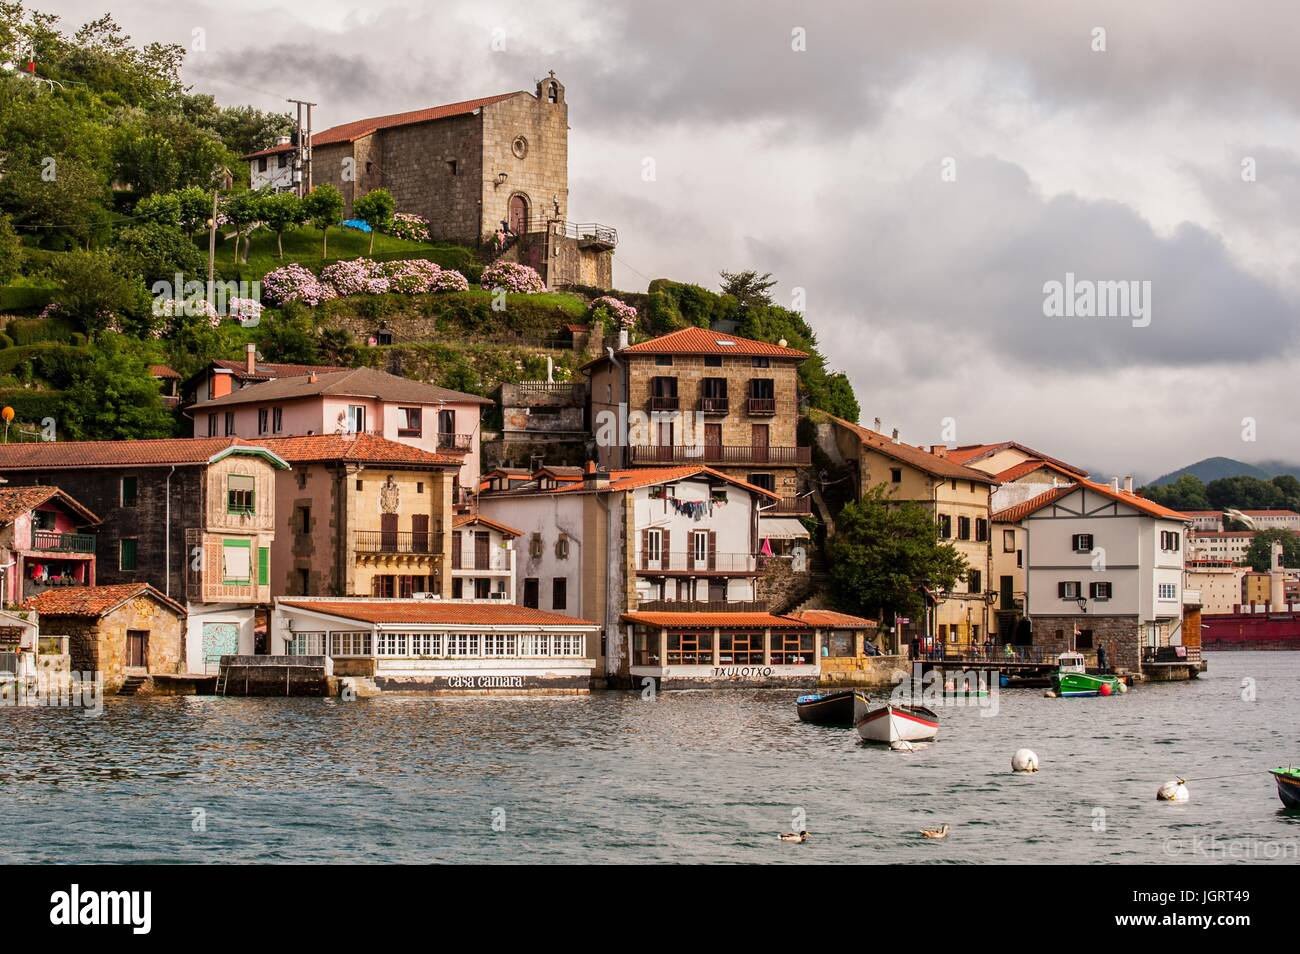 Scenic view of the fishing village of Pasajes de San Juan in northern Spain. - Stock Image